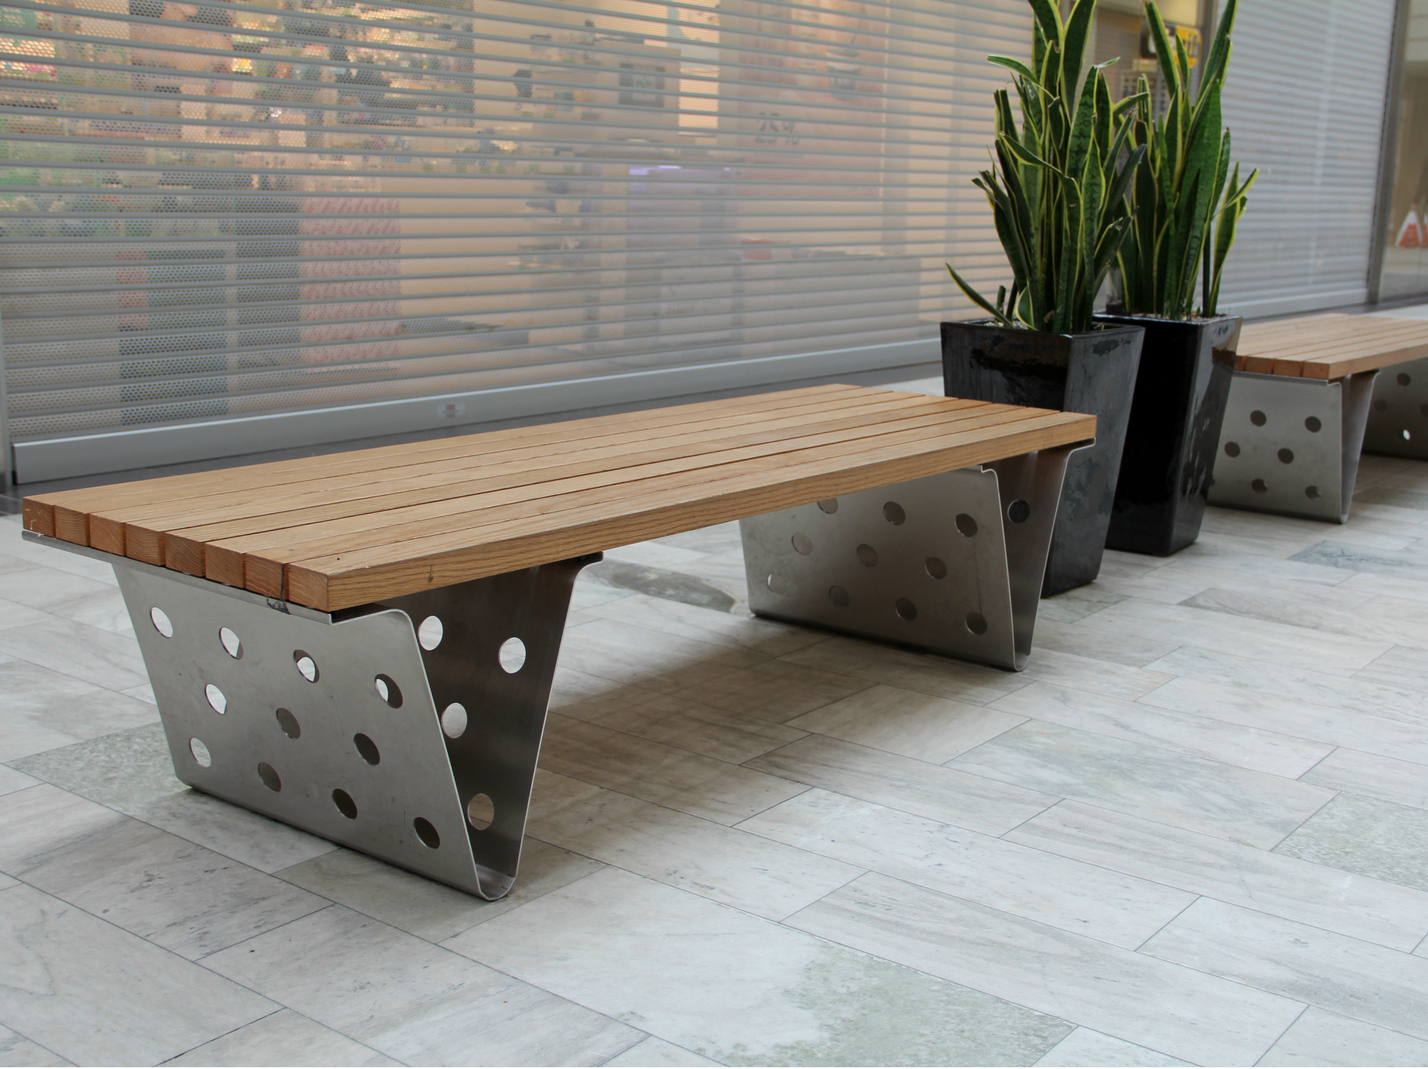 How to build sitting bench design pdf plans - Imagenes de bancos para sentarse ...